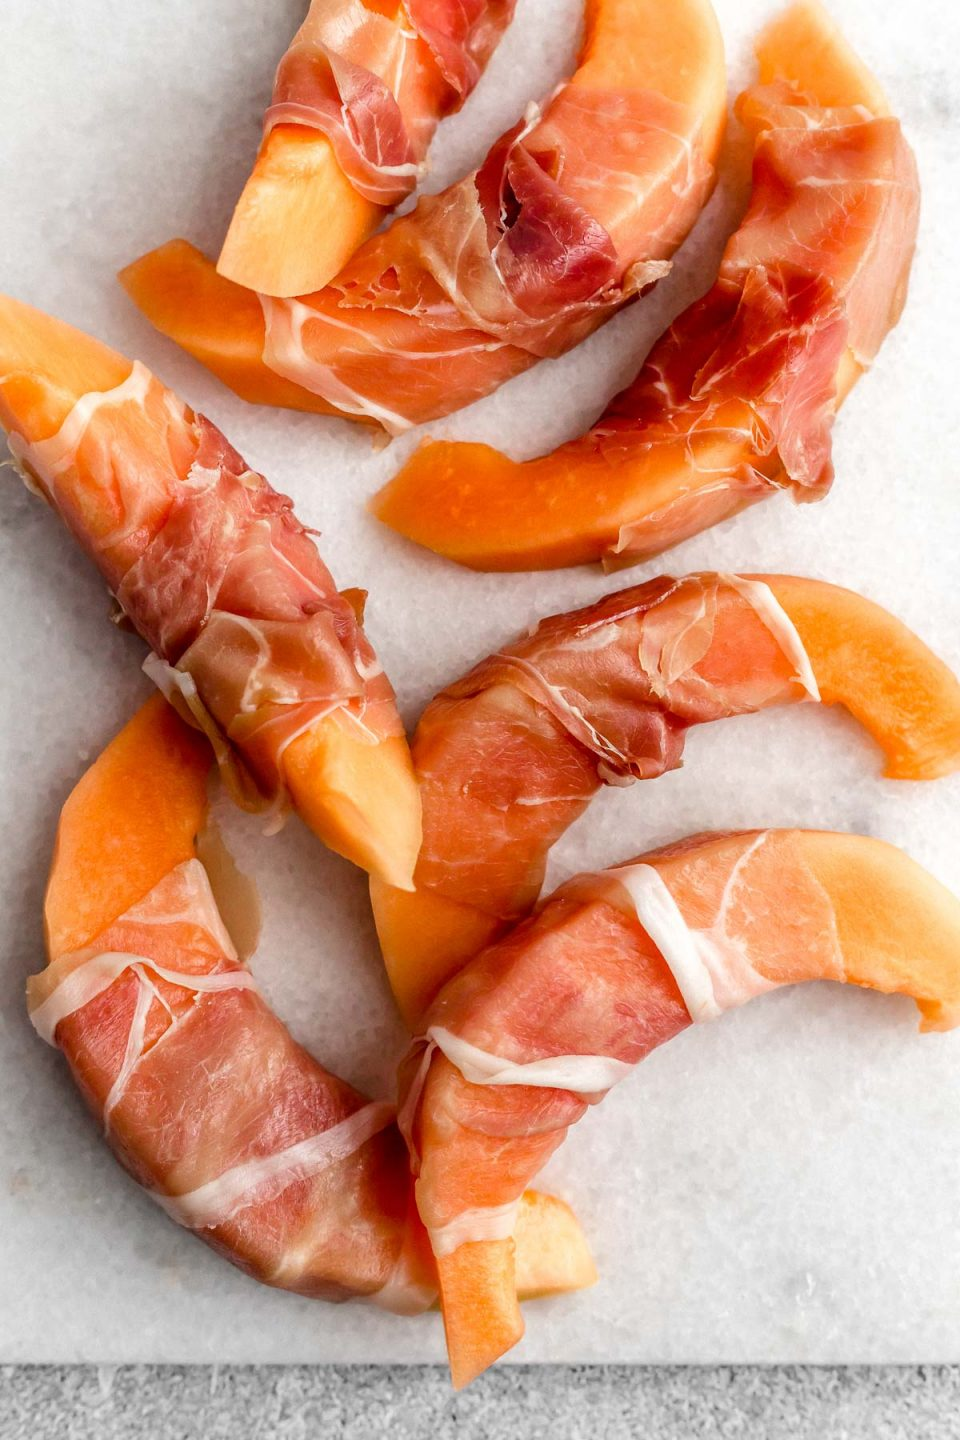 Thinly sliced prosciutto wrapped around 7 cantaloupe melon spears. The Prosciutto-wrapped cantaloupe sit atop a white cutting board.